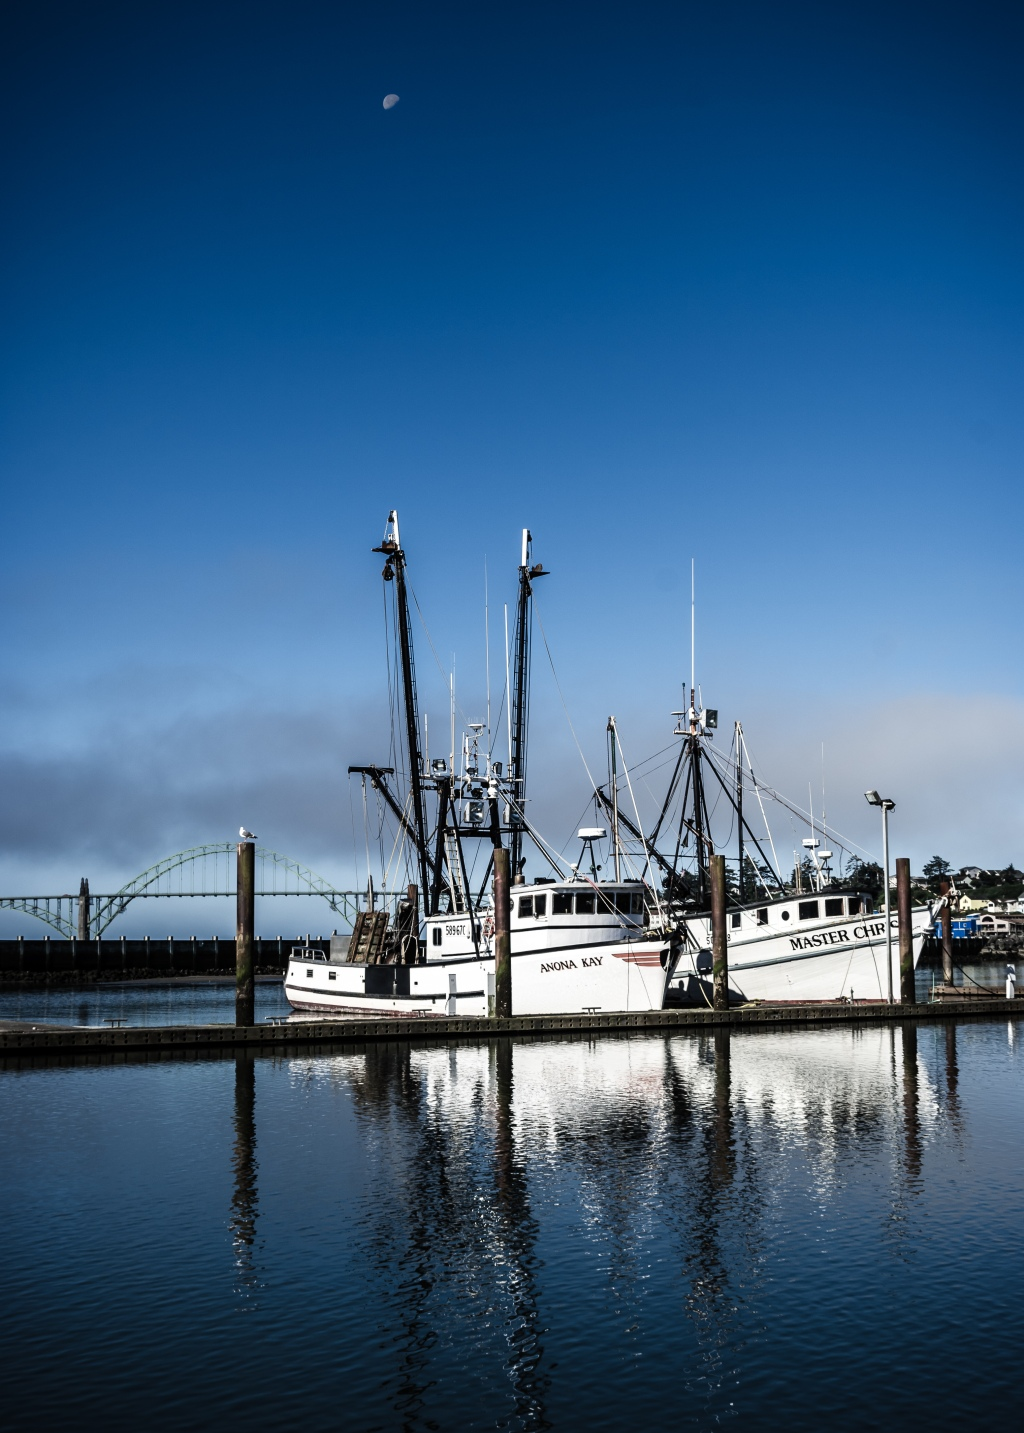 Boats and the moon on Yaquina Bay, Newport, OR